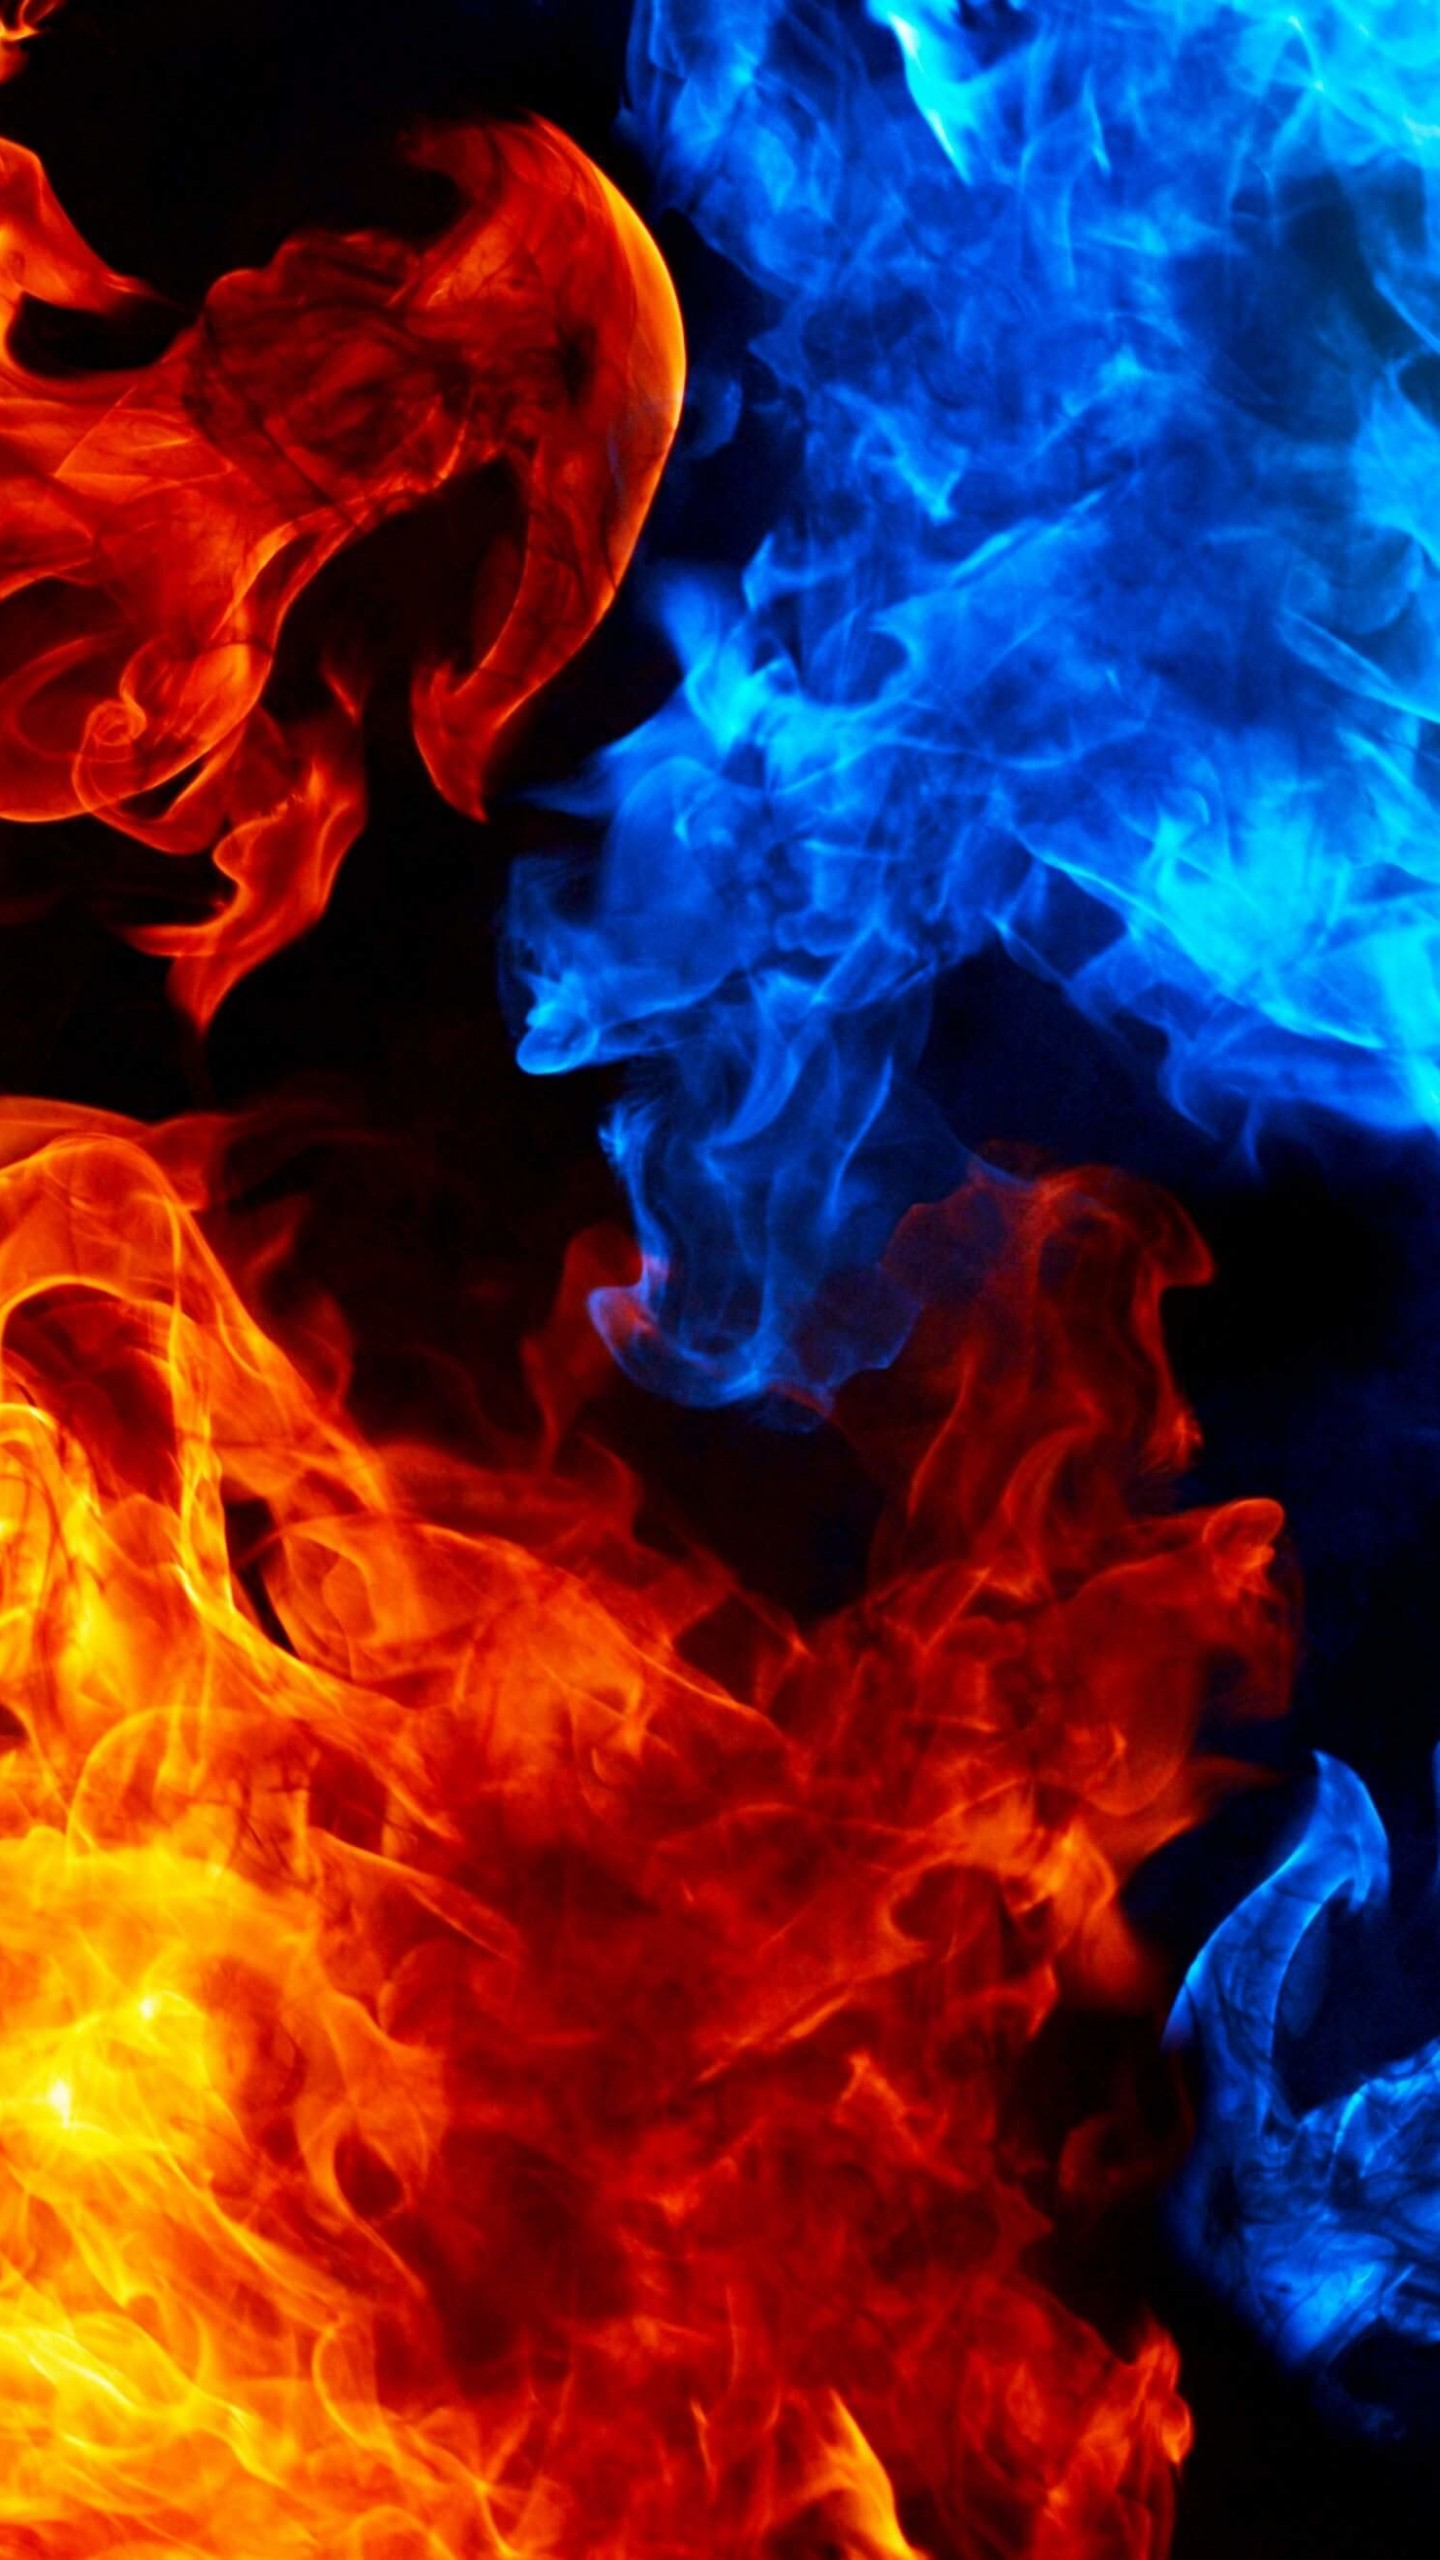 Blue And Red Fire Wallpaper for LG G3